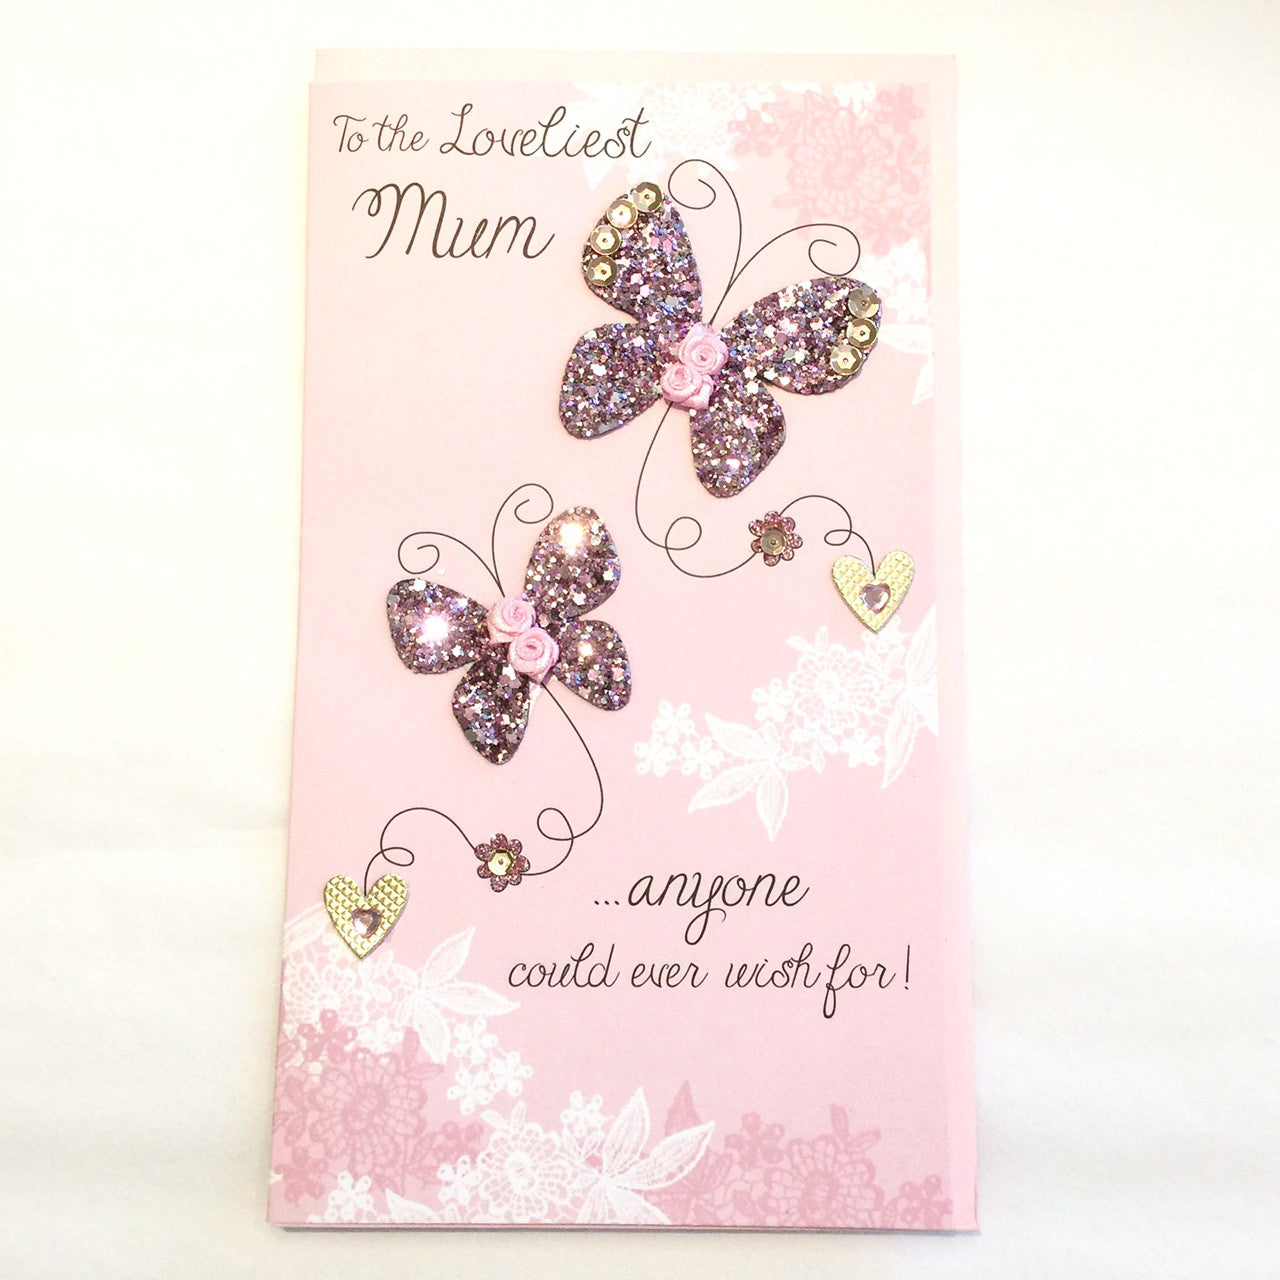 """To the lovliest mum ...anyone could ever wish for"" Mother's Day Greeting Card, ID-Incognito Distribution, Putti Fine Furnishings"